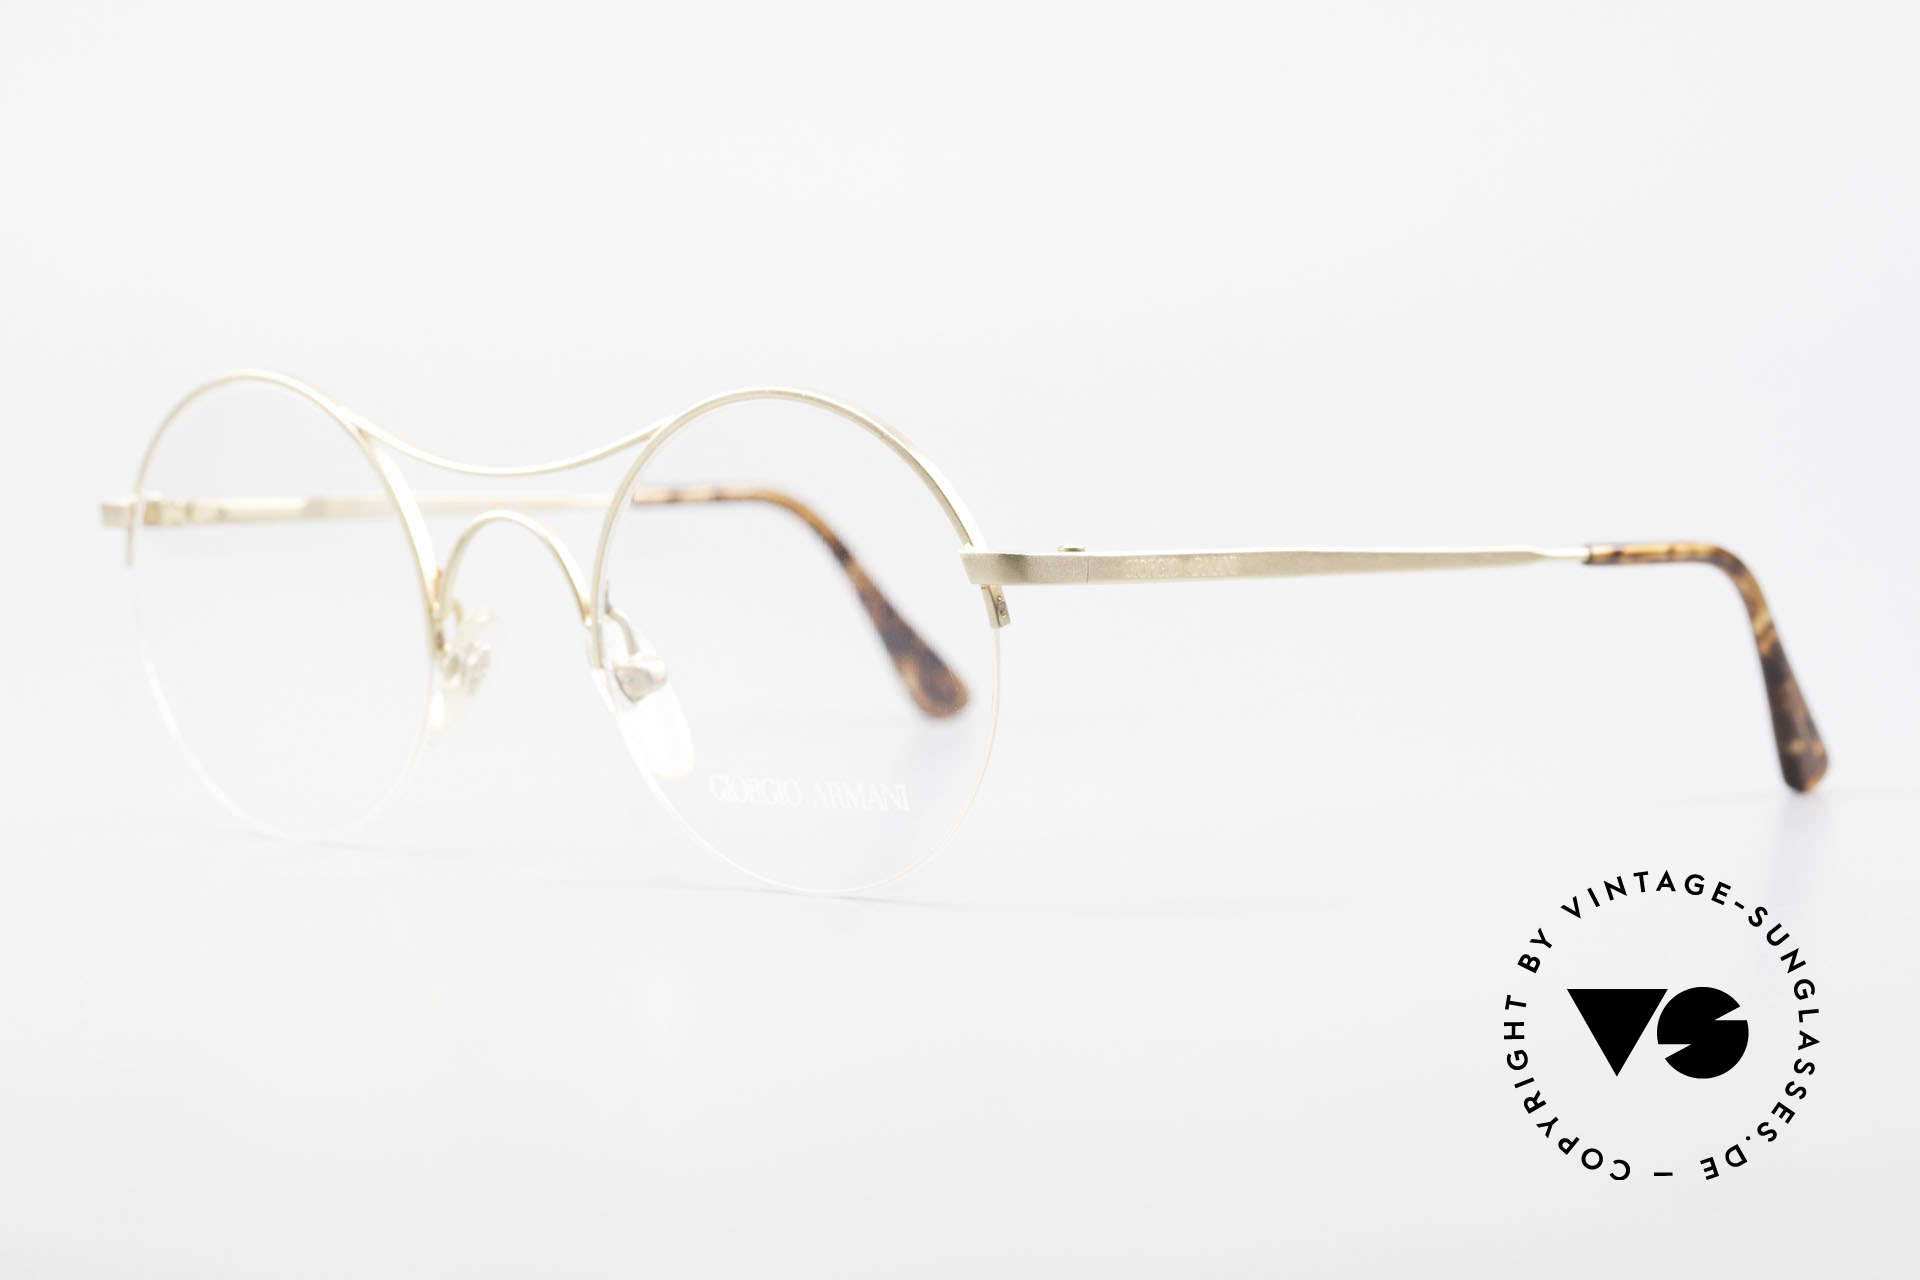 Giorgio Armani 121 Schubert Glasses Round Style, mod. 229 = the 'Schubert glasses' (Austrian composer), Made for Men